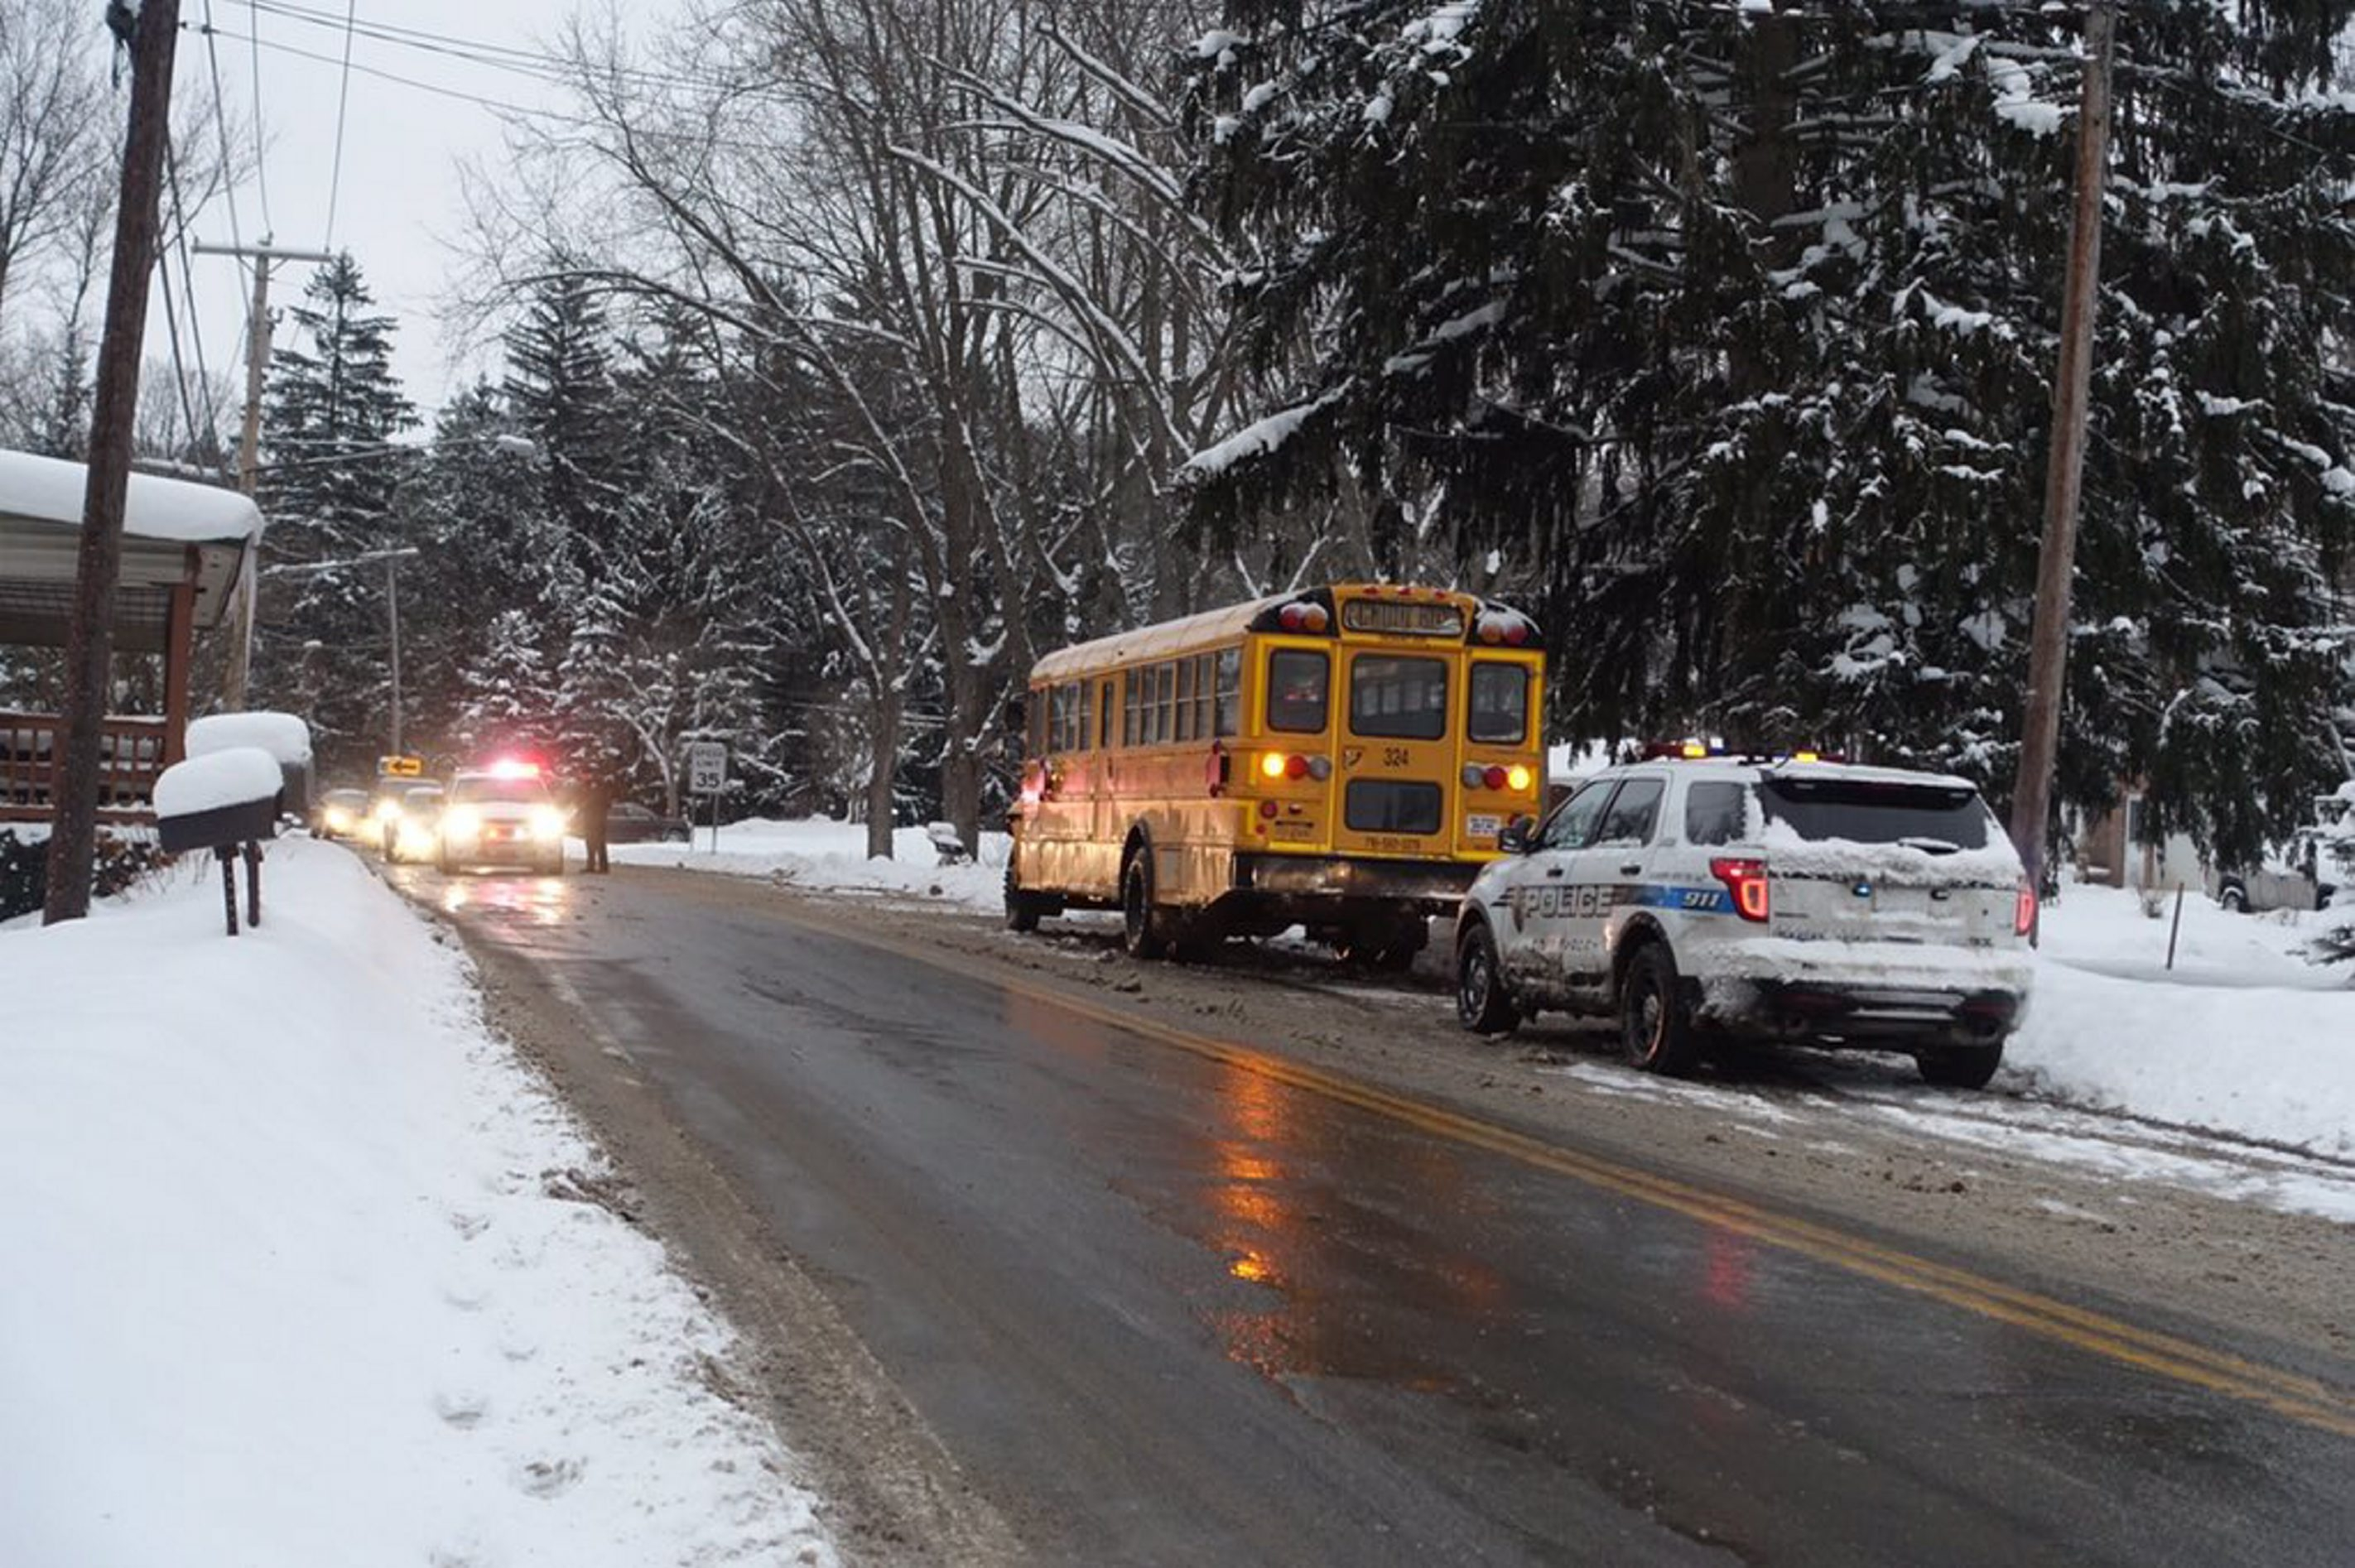 None of the eight students aboard Springville-Griffith school bus were injured in a weather-related collision Thursday morning in West Falls. (John Hickey/Buffalo News)